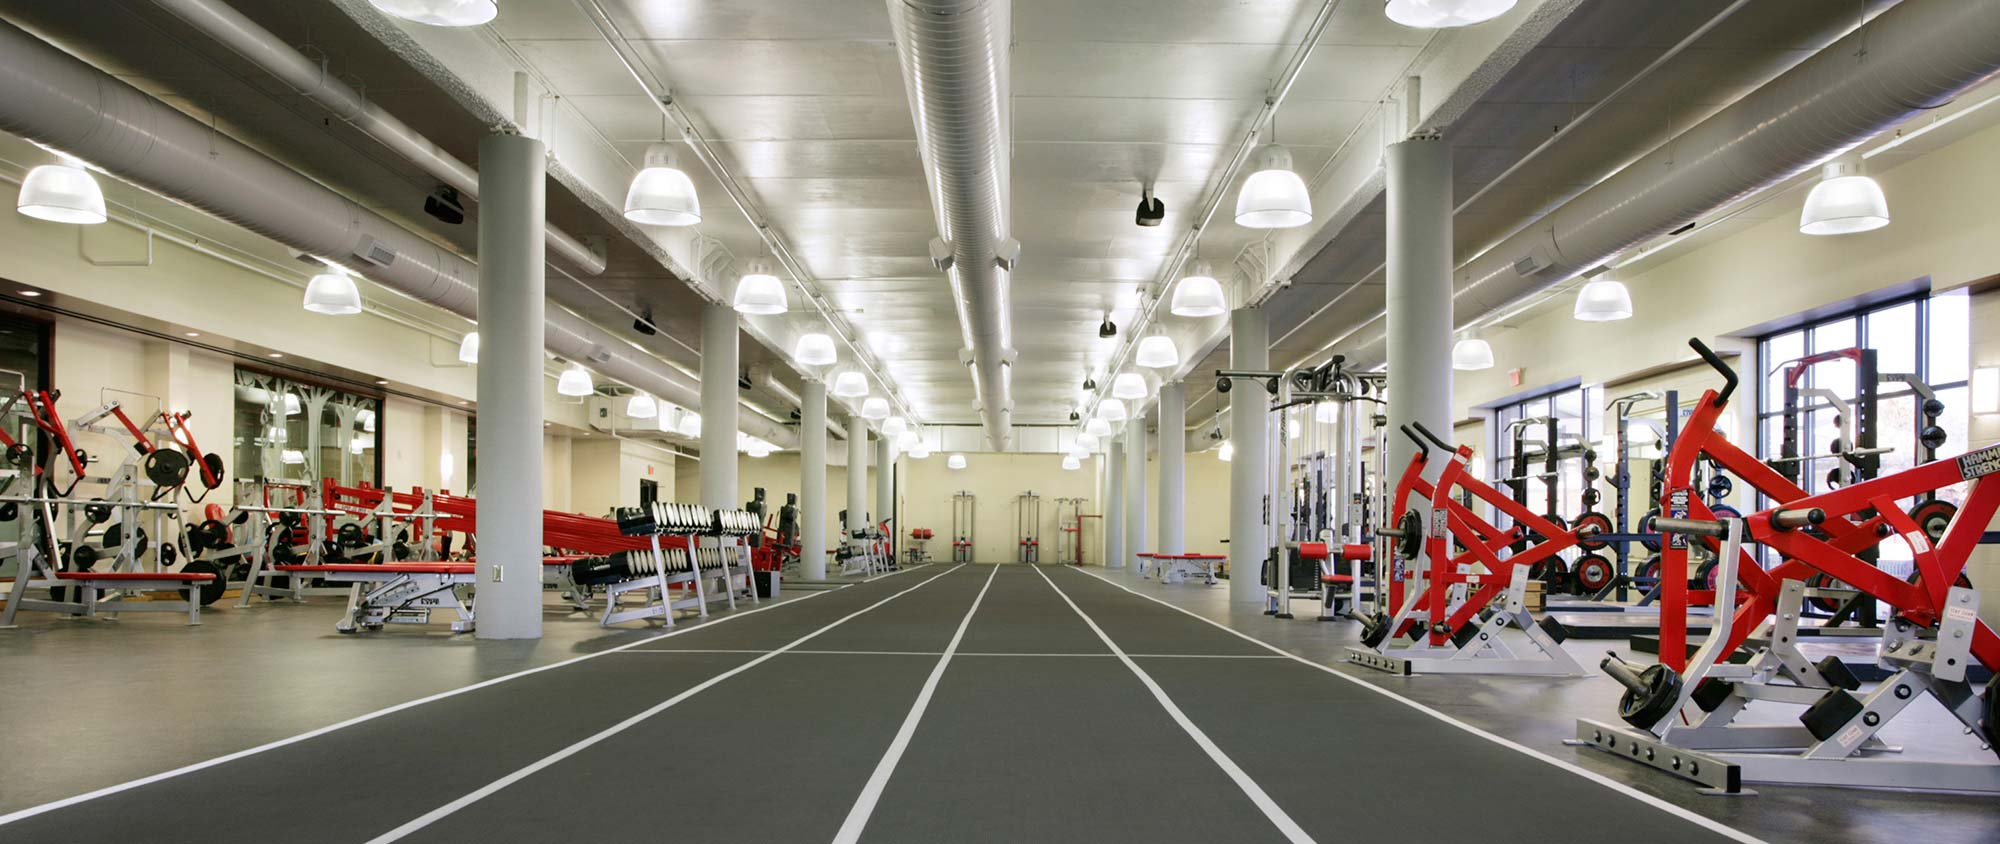 Brentwood Academy Athletic Fitness Center